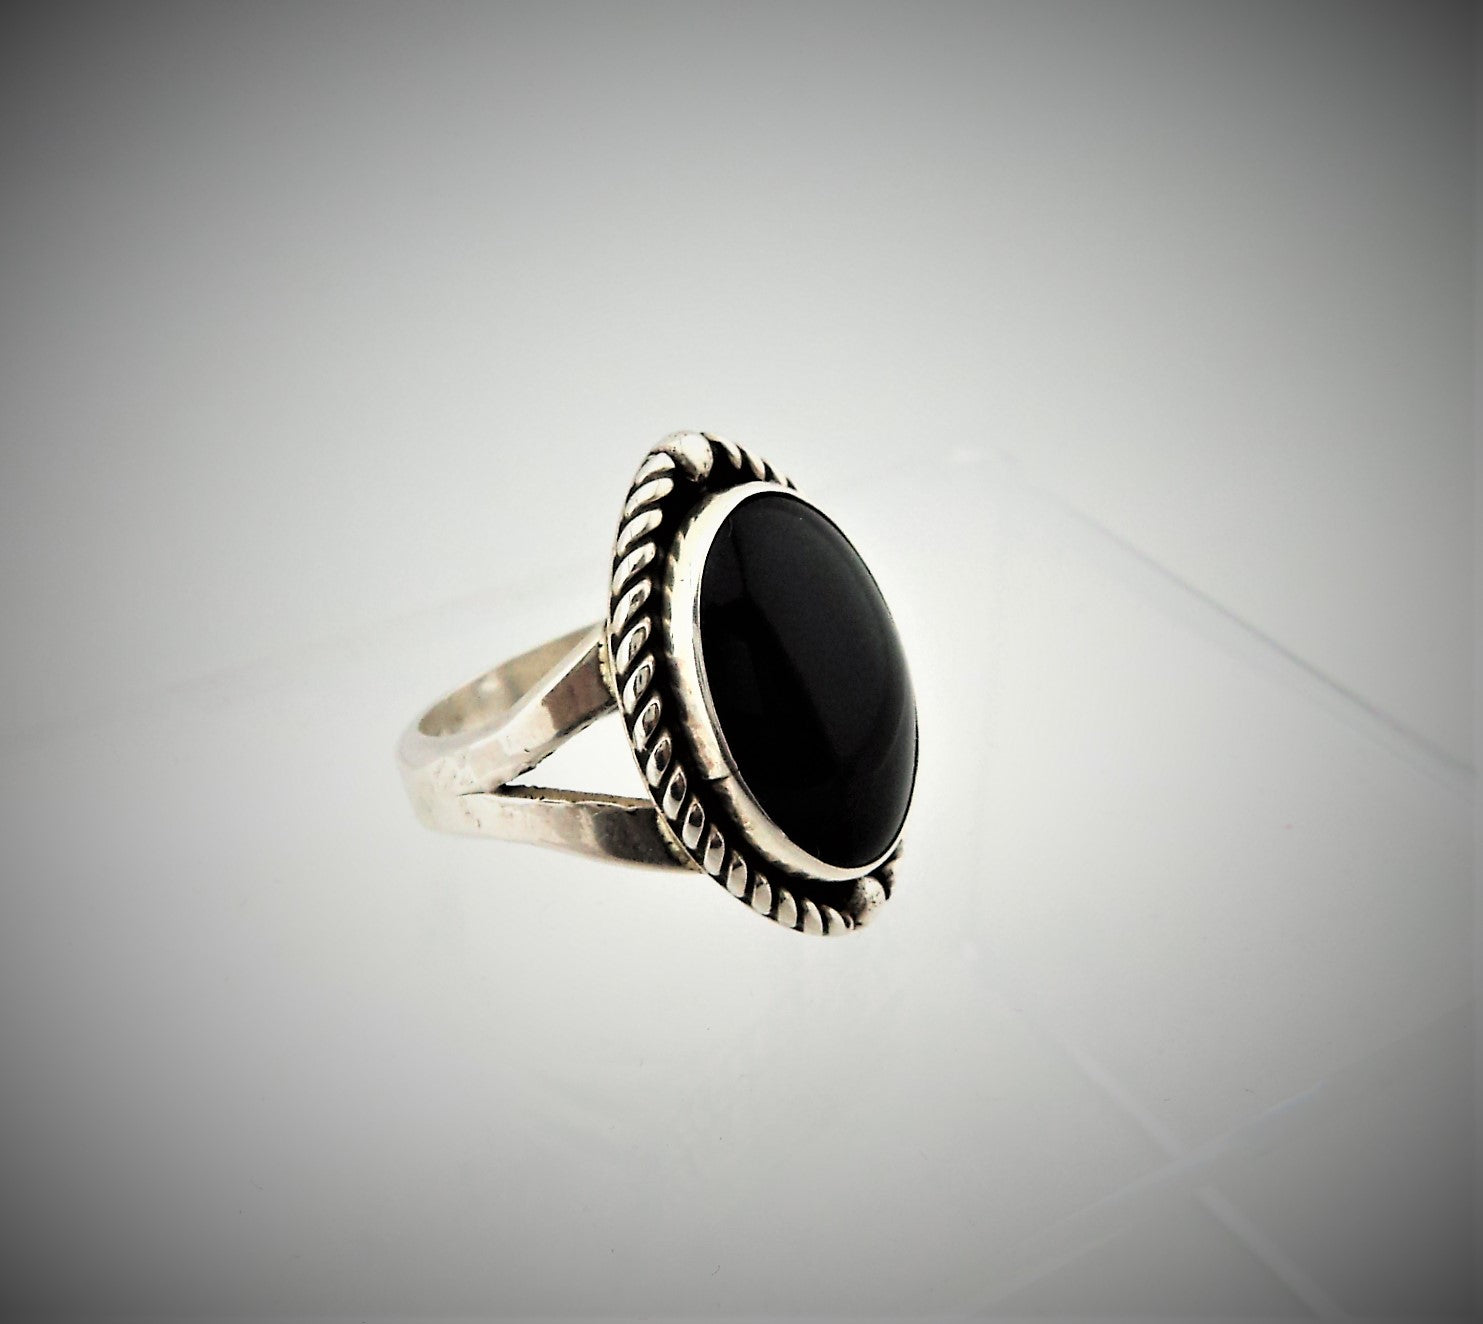 Navajo Sterling Silver and Black Onyx Ring